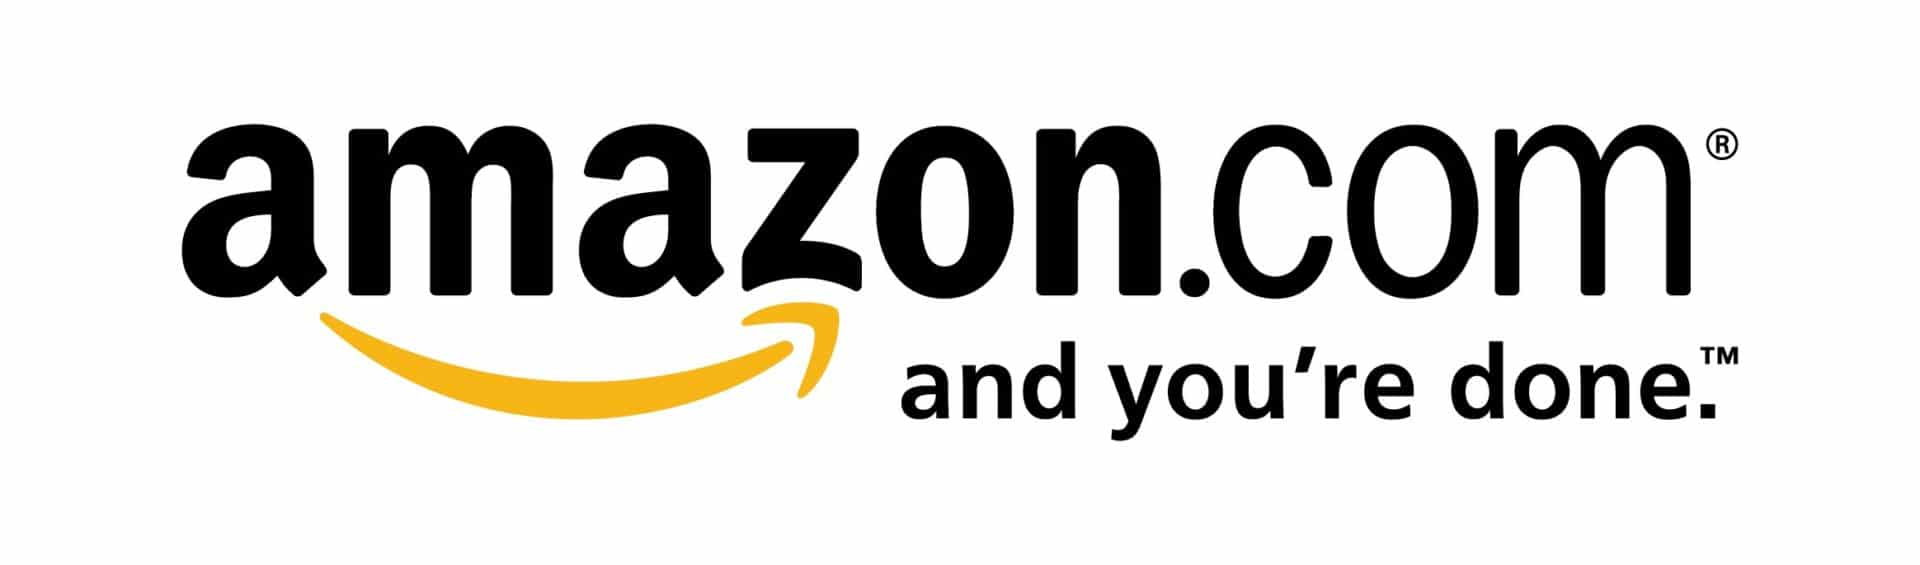 amazon_logo_small